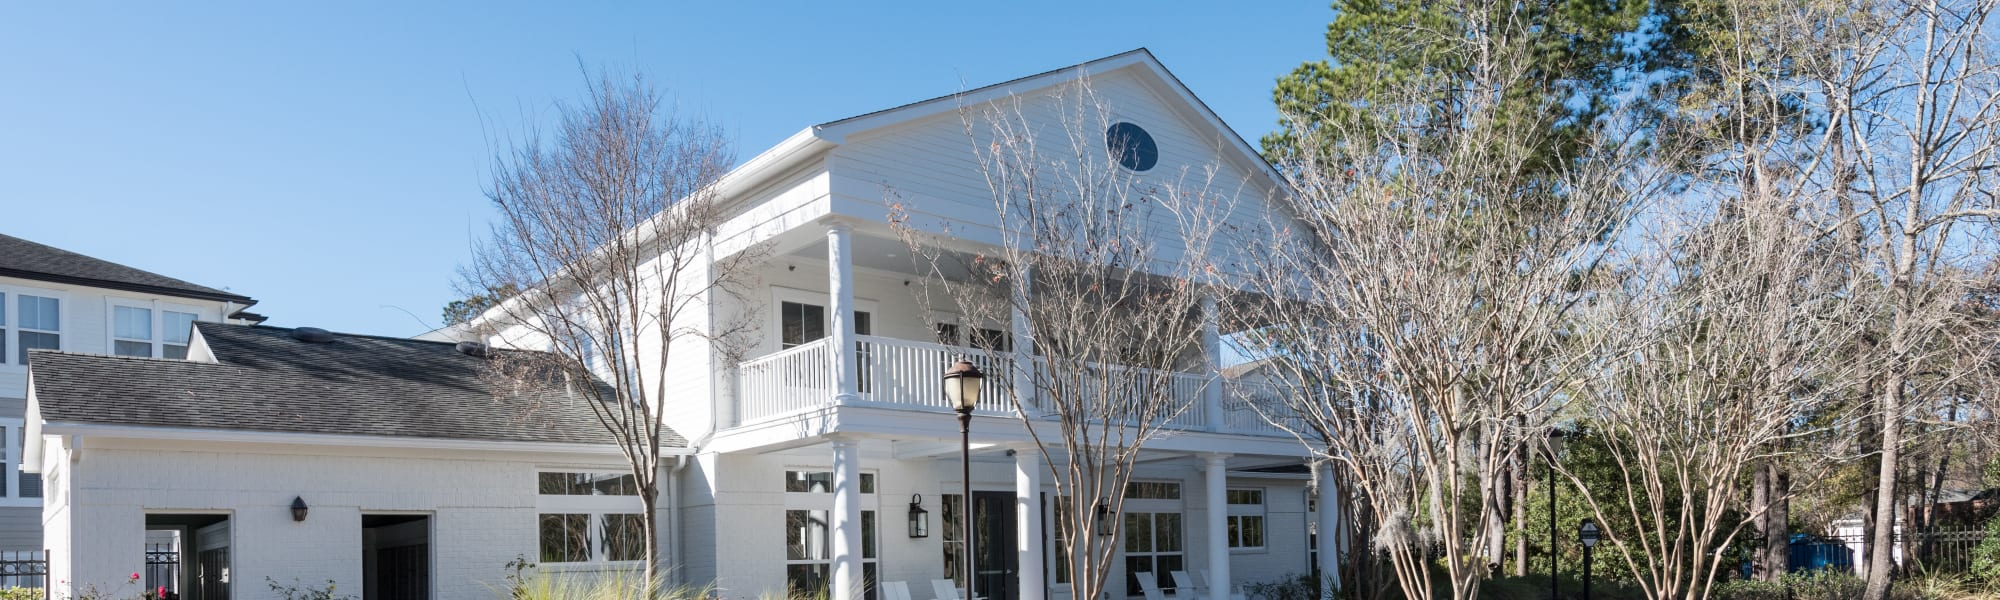 Schedule a tour at Ingleside Apartments in North Charleston, South Carolina